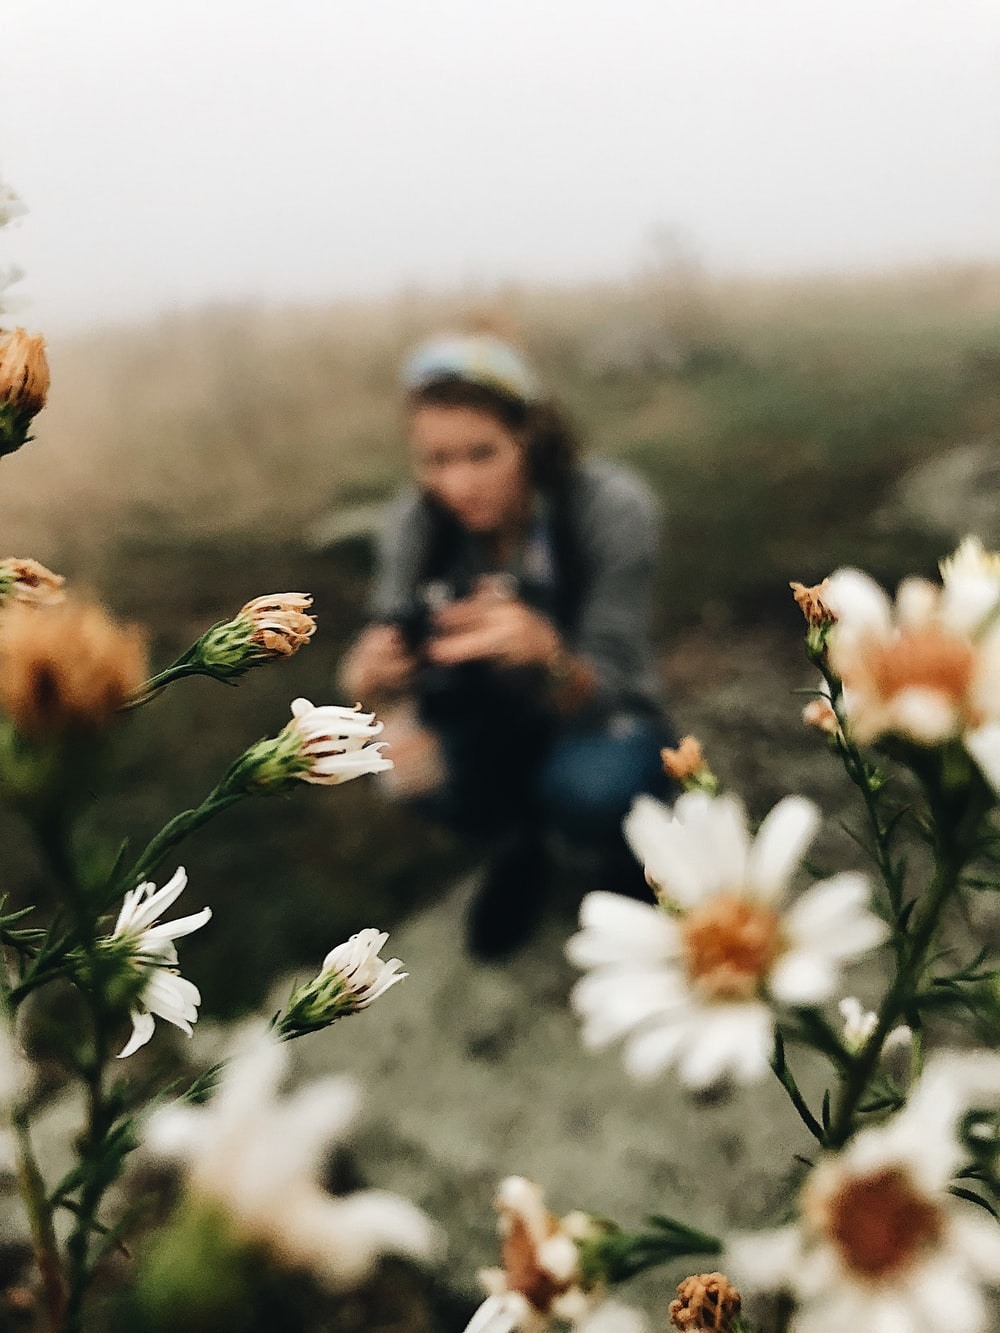 shallow focus photo of woman and flowers